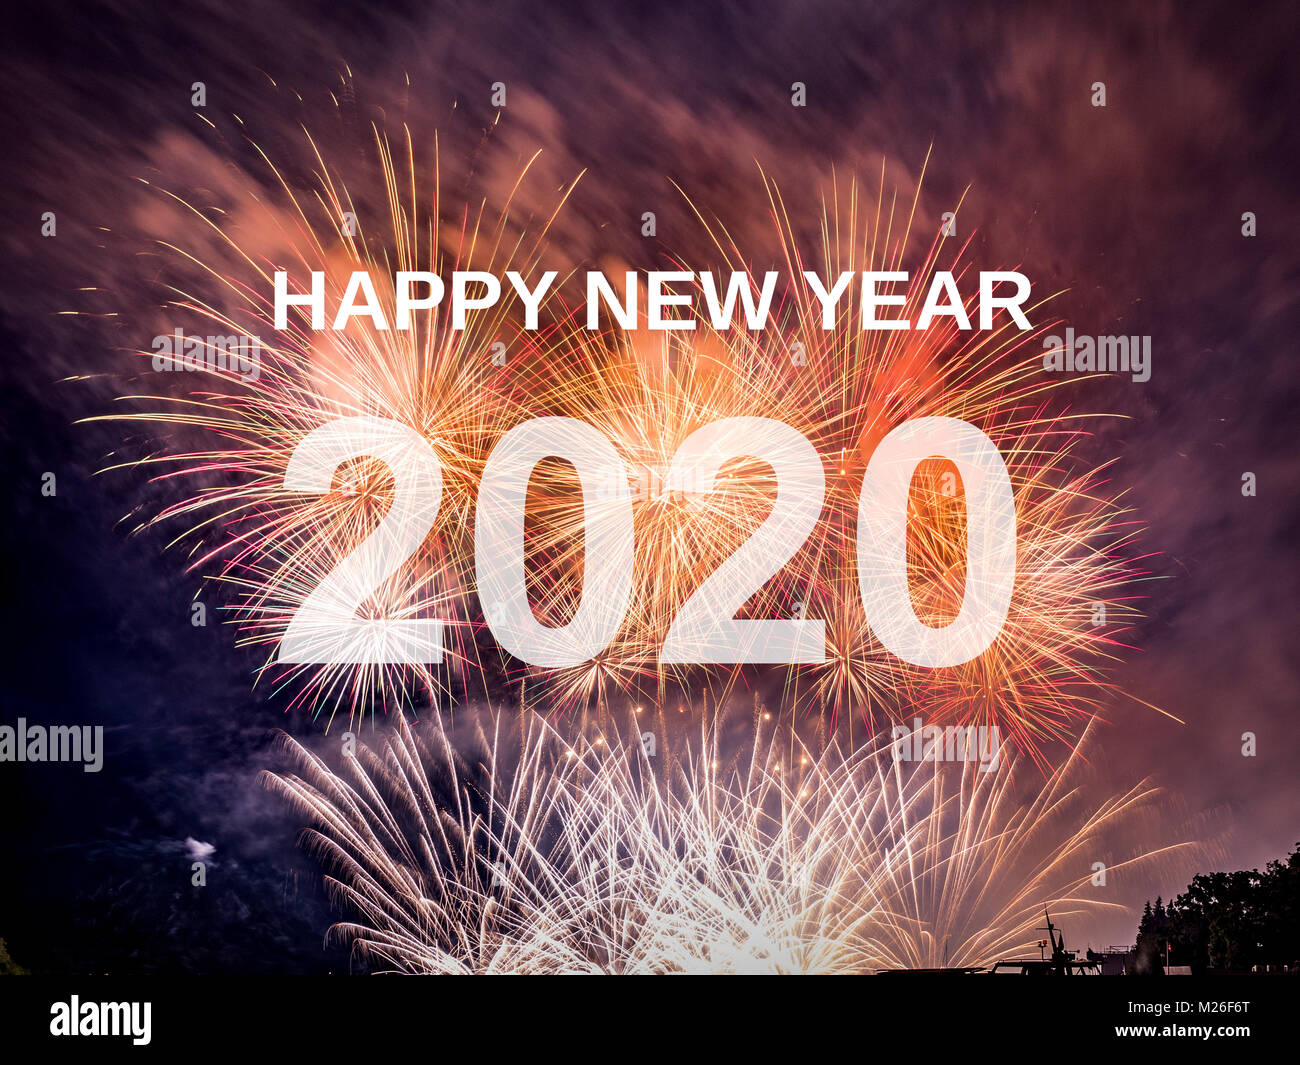 Happy new year 2020 with fireworks background. Celebration New Year ...